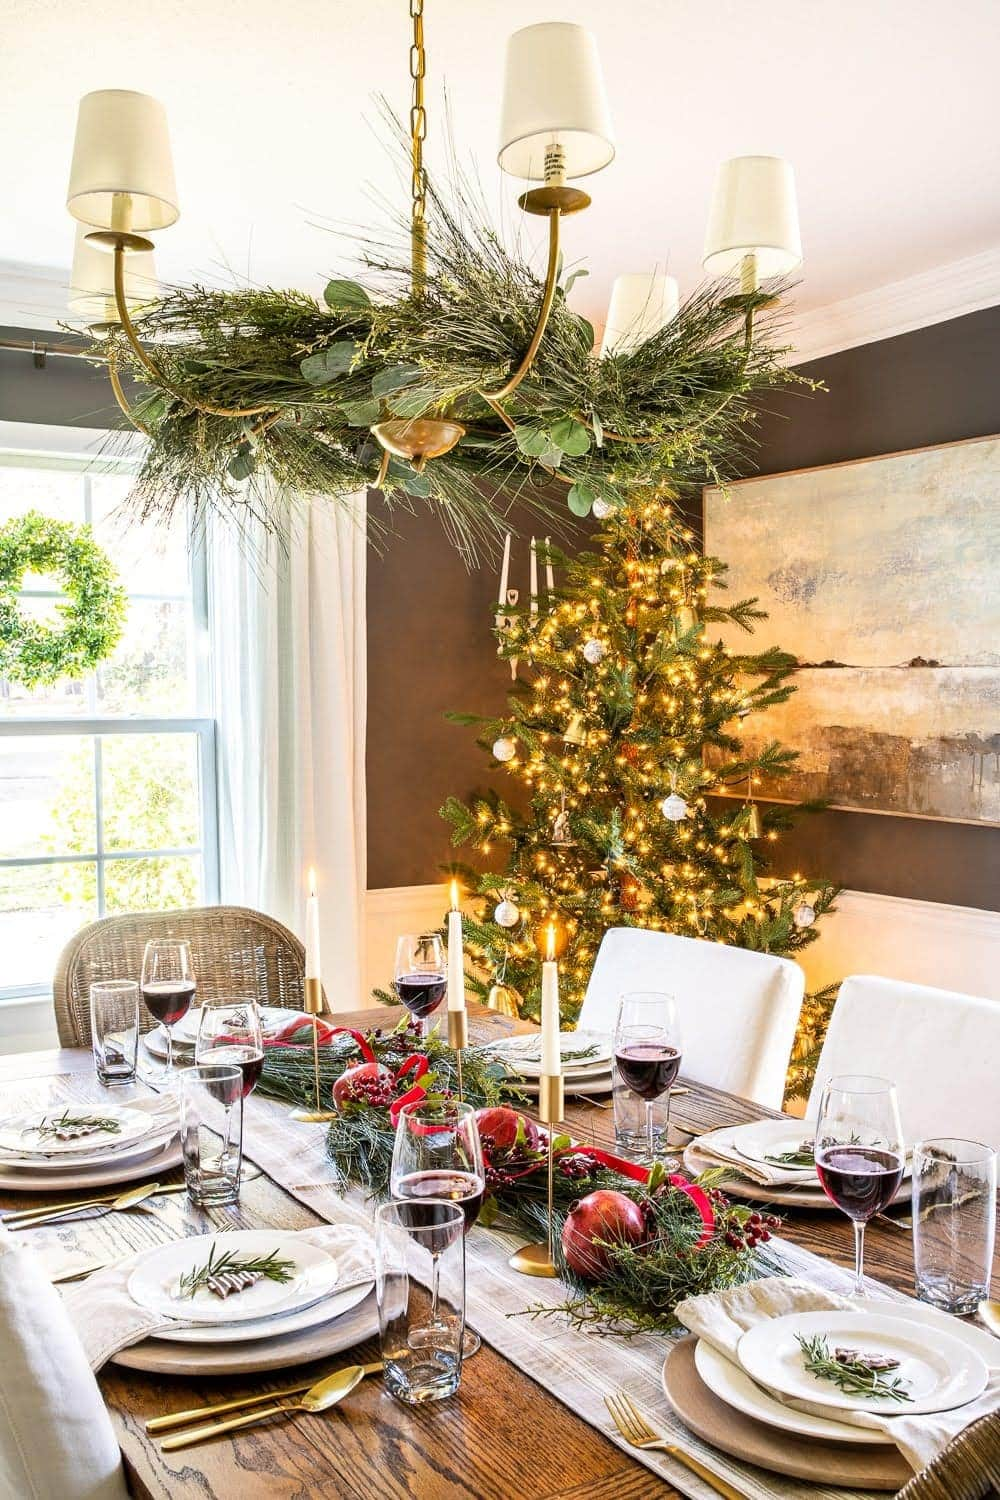 Christmas decor ideas   garland hung from a chandelier